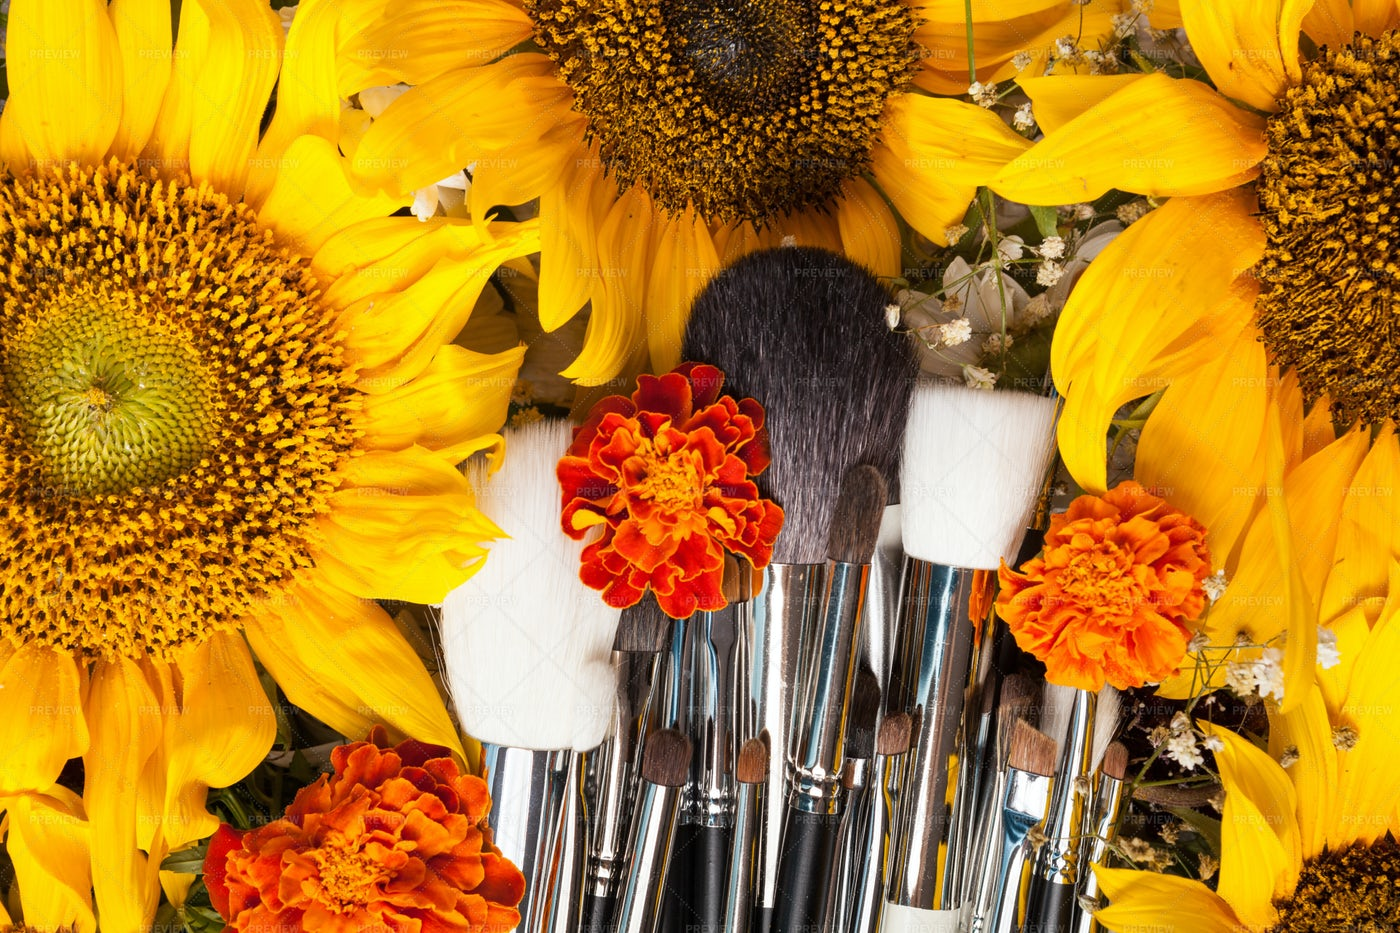 Flowers And Makeup Brushes: Stock Photos